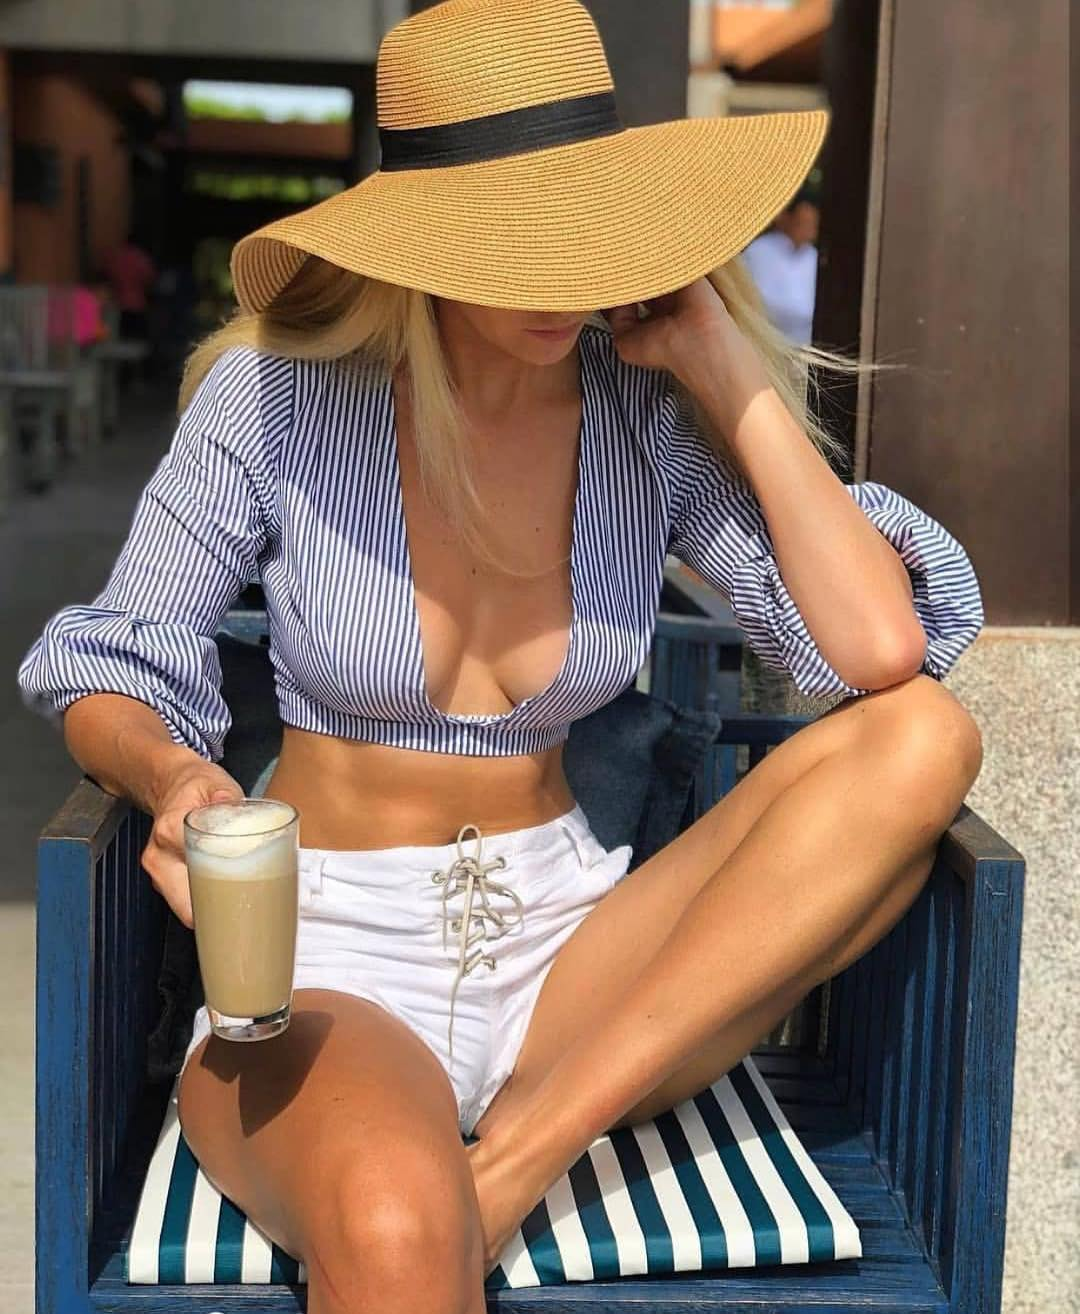 Crop Blue-White Striped Top With Deep Neckline And White Shorts For Summer Vacation 2021